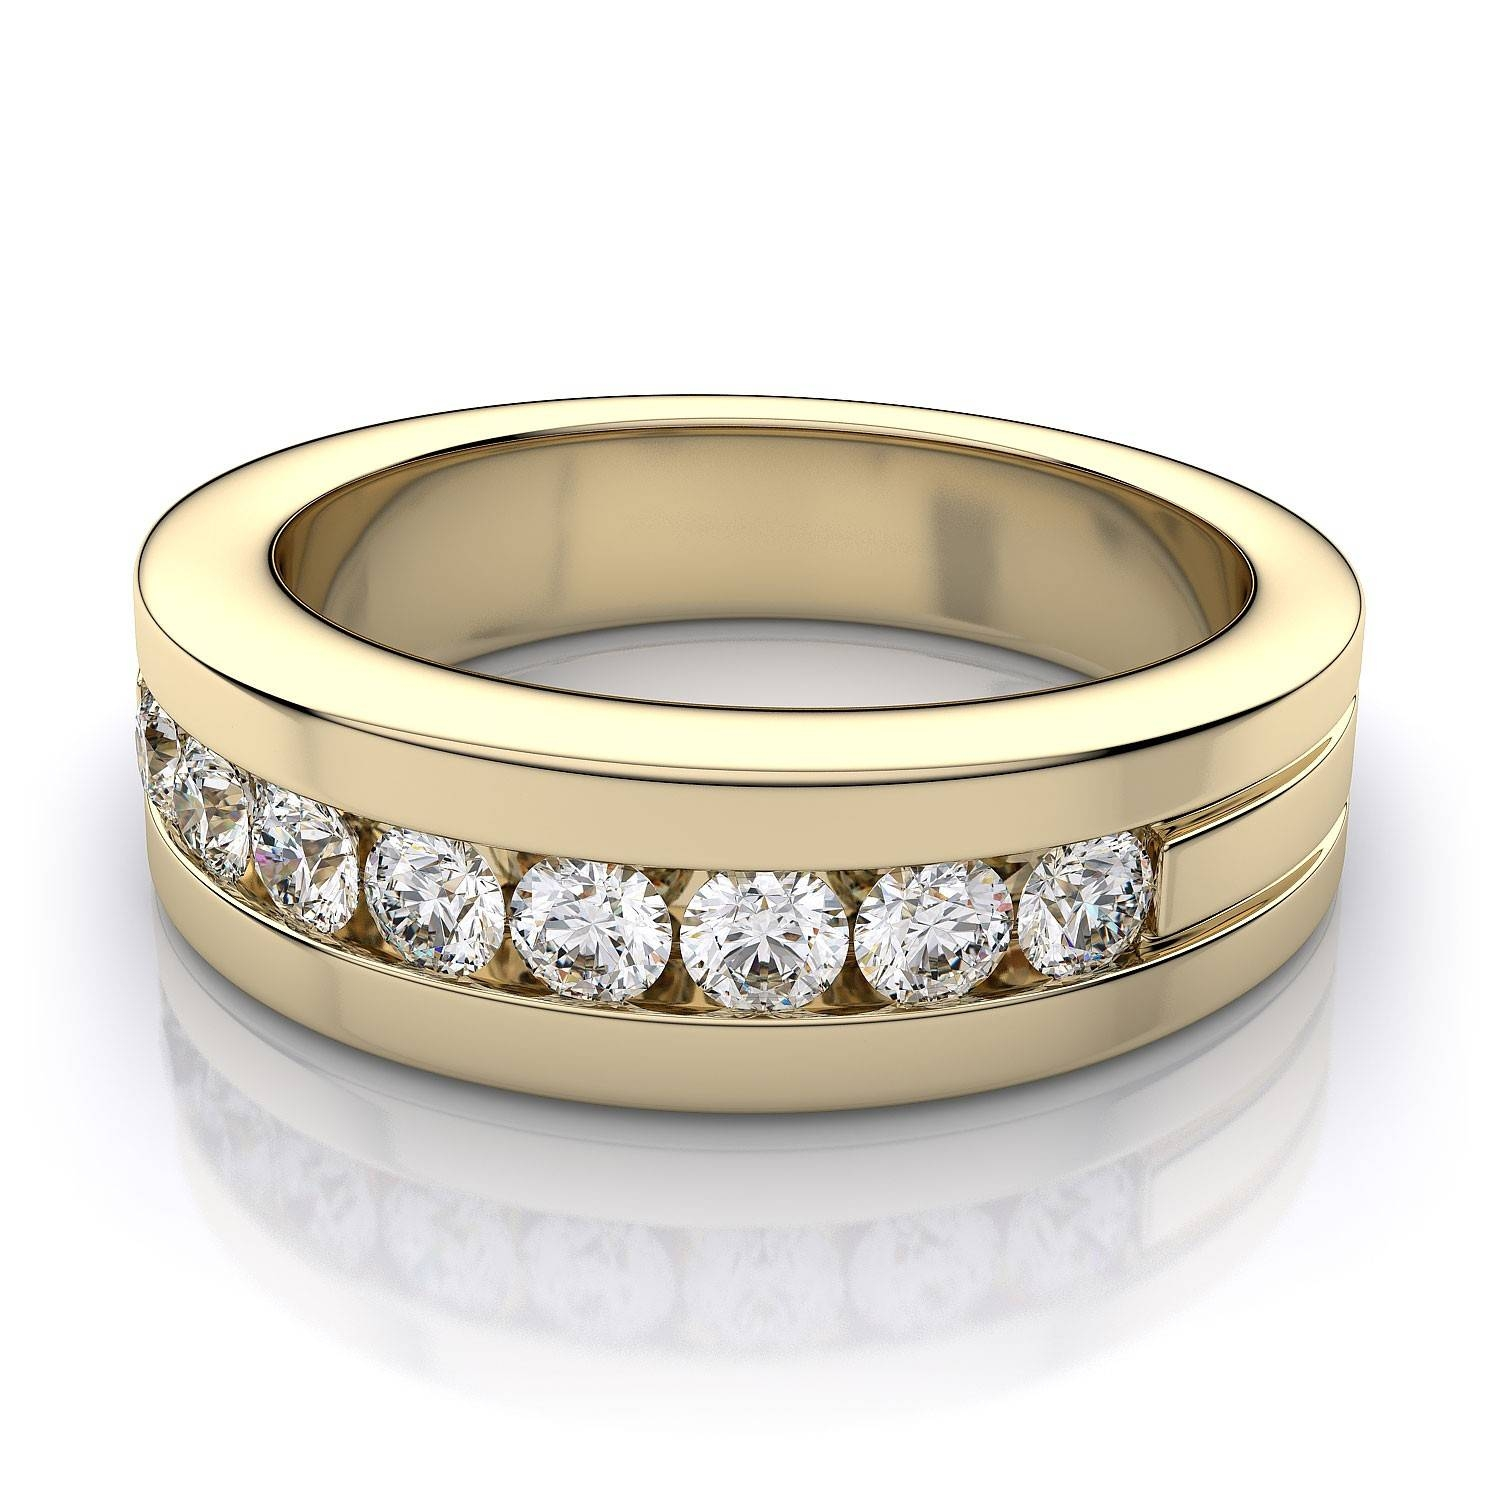 Wedding Rings : Men Wedding Rings Gold Silver Wedding Bands For Pertaining To Mens Gold Diamond Wedding Bands (View 15 of 15)